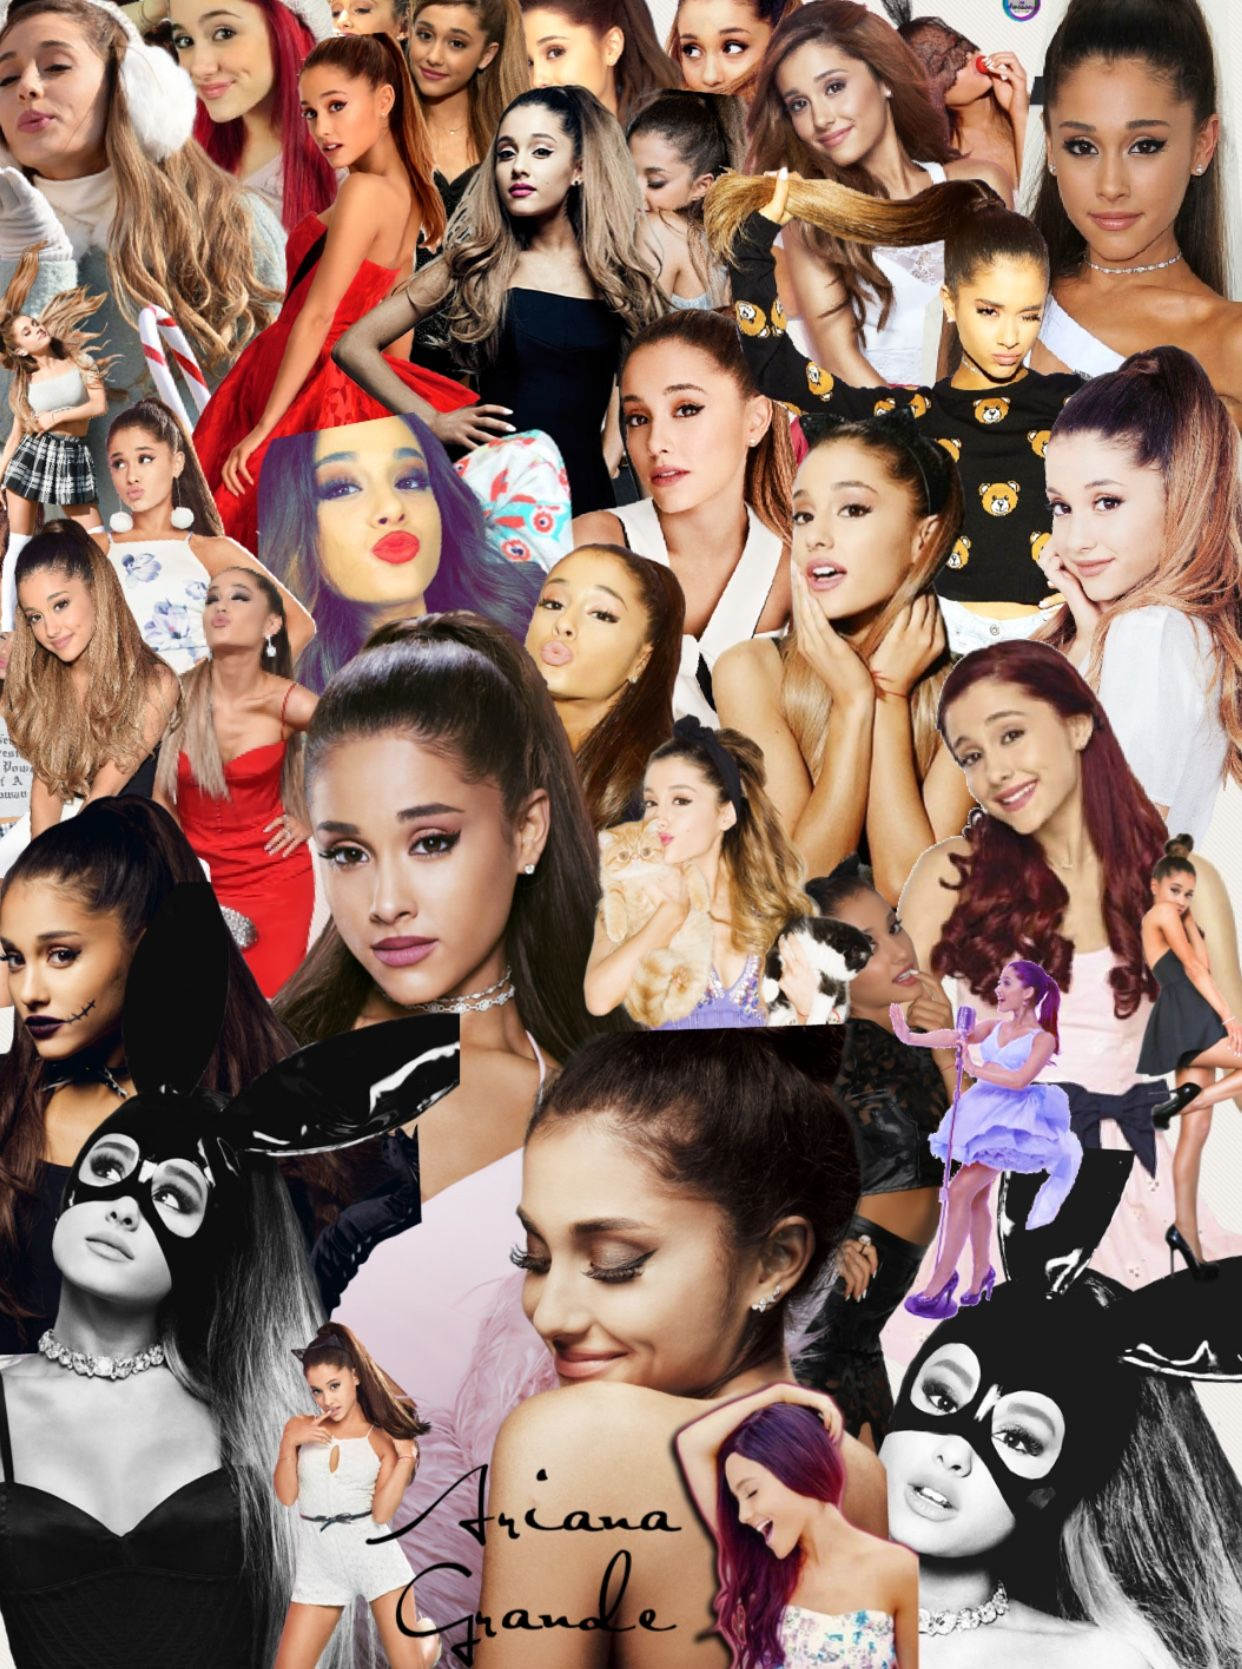 PicColage Ariana Grande (With images) Ariana, Ariana